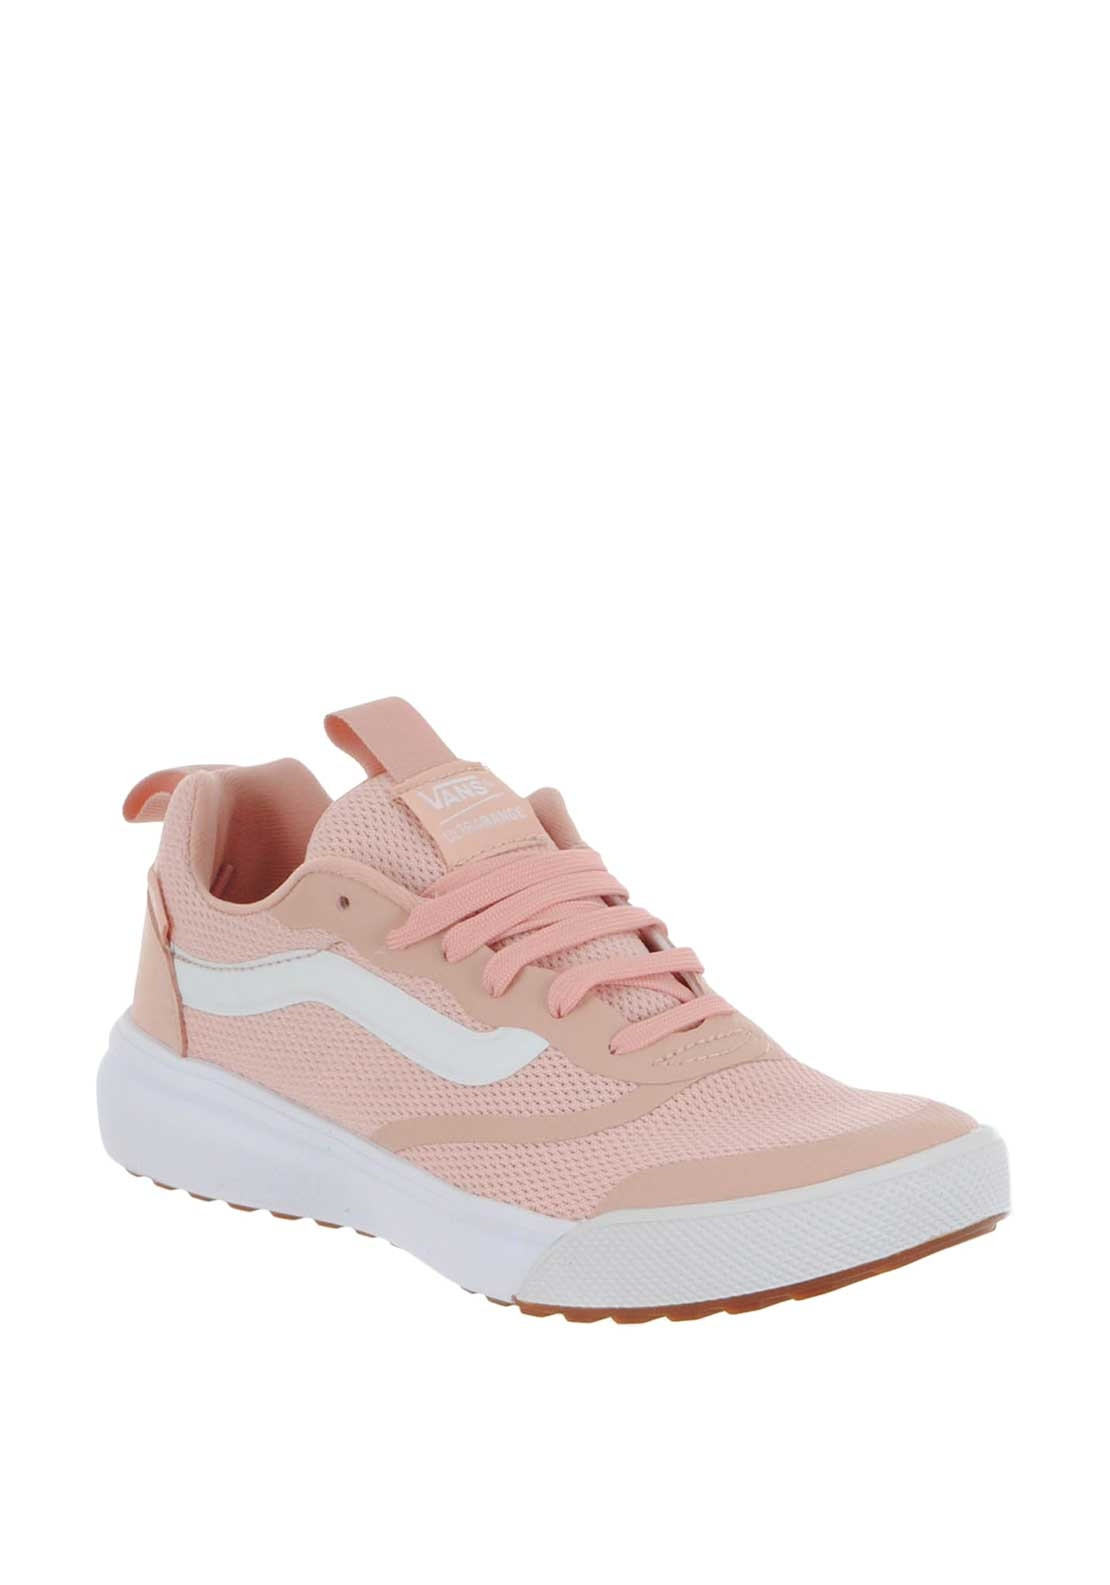 variety styles of 2019 new & pre-owned designer 50% off Vans Womens Ultra Lite Trainers, Peach